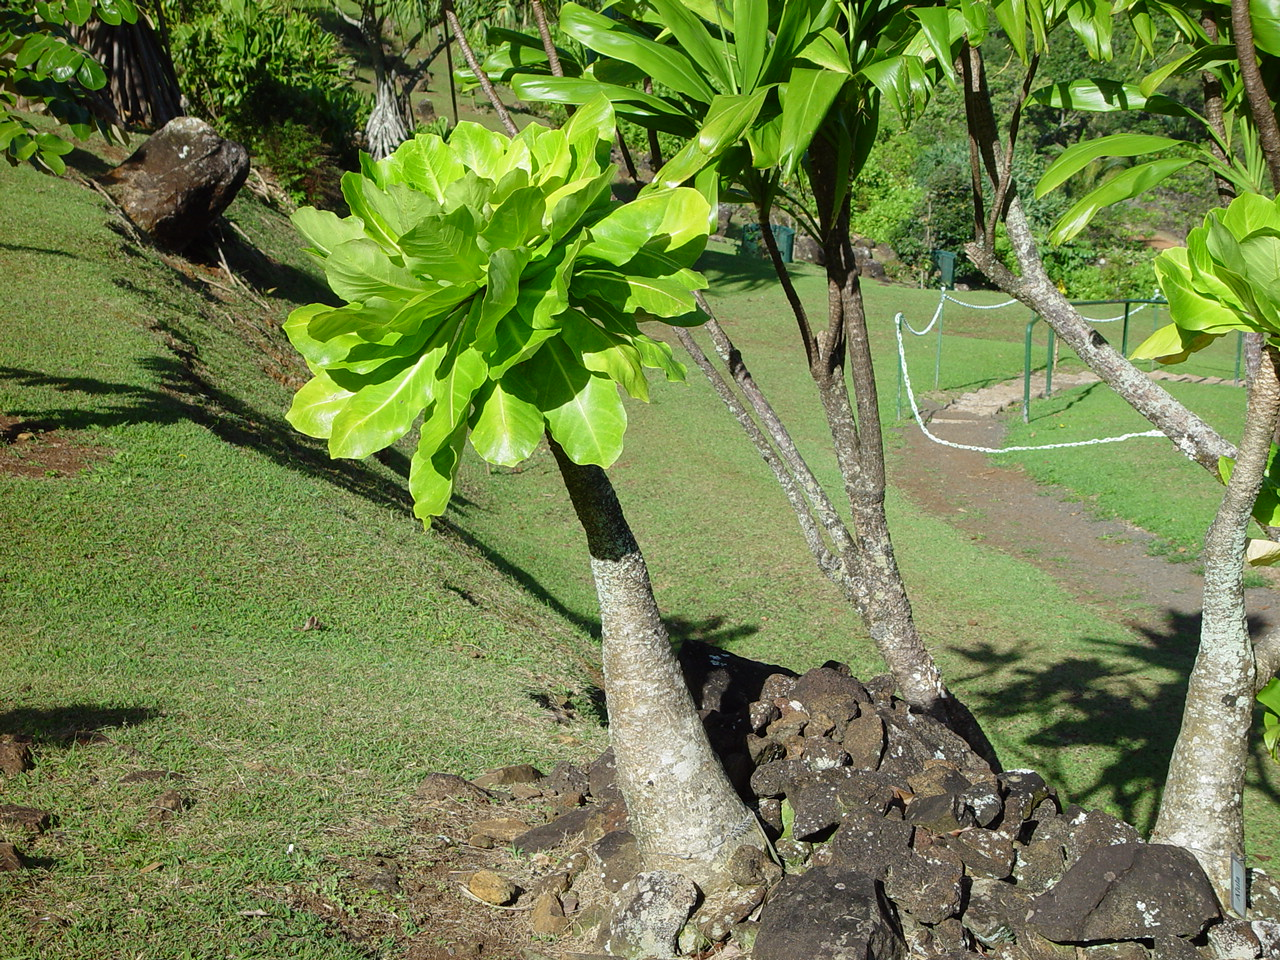 Brighamia insignis   - Habit showing swollen stem, leaf cluster